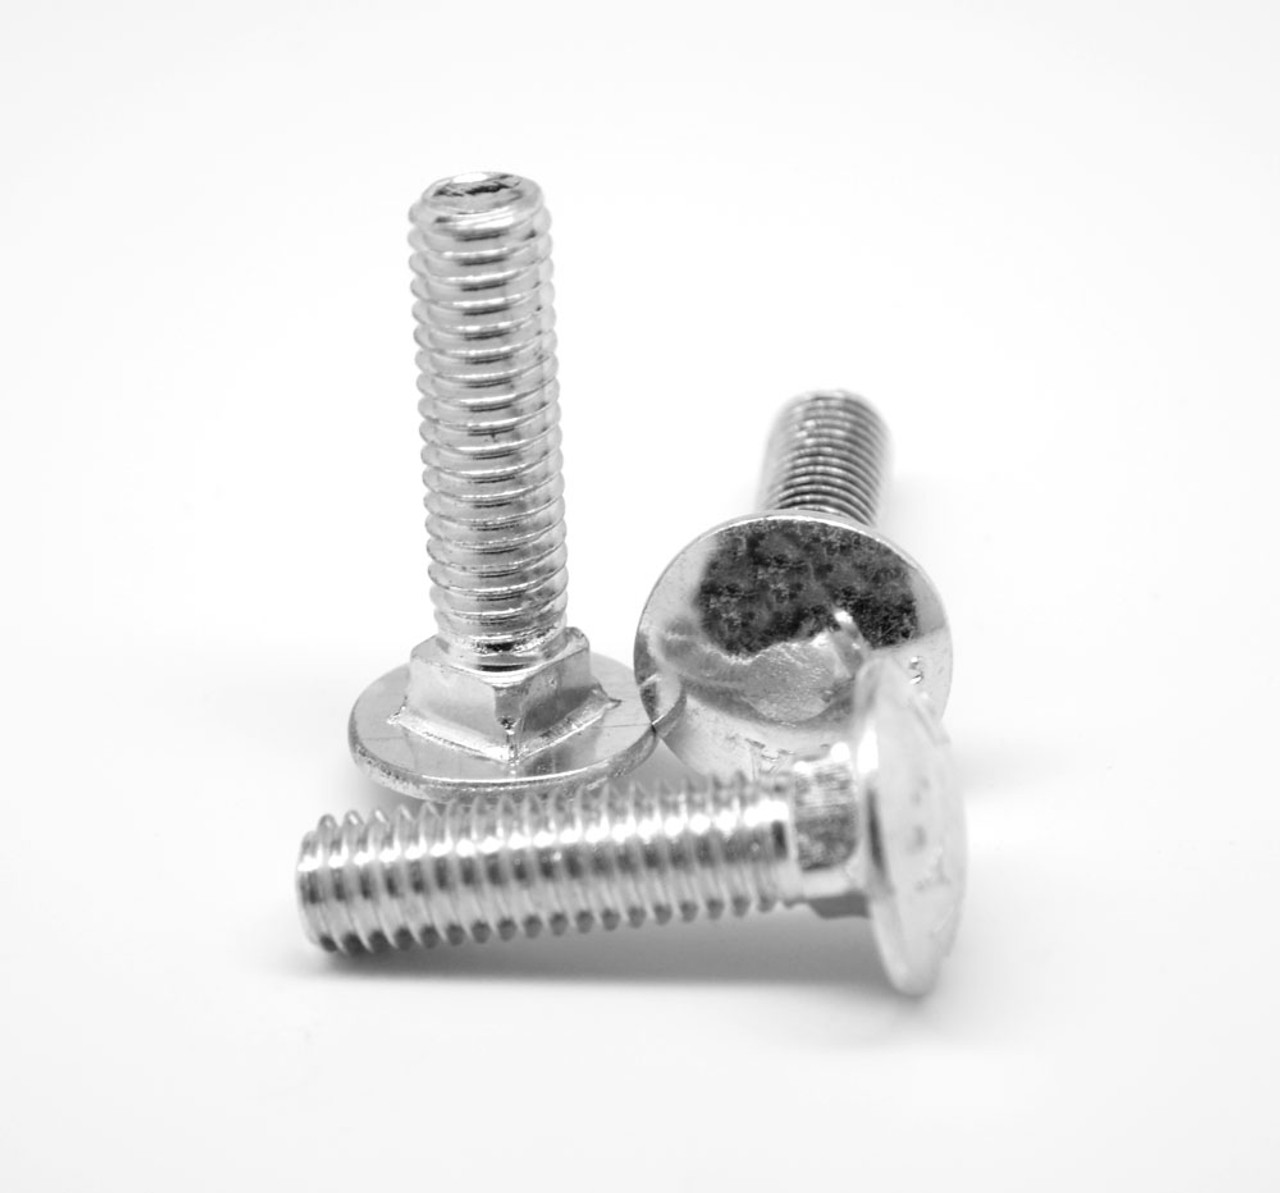 """#10-24 x 3 1/2"""" (FT) Coarse Thread A307 Grade A Carriage Bolt Low Carbon Steel Zinc Plated"""